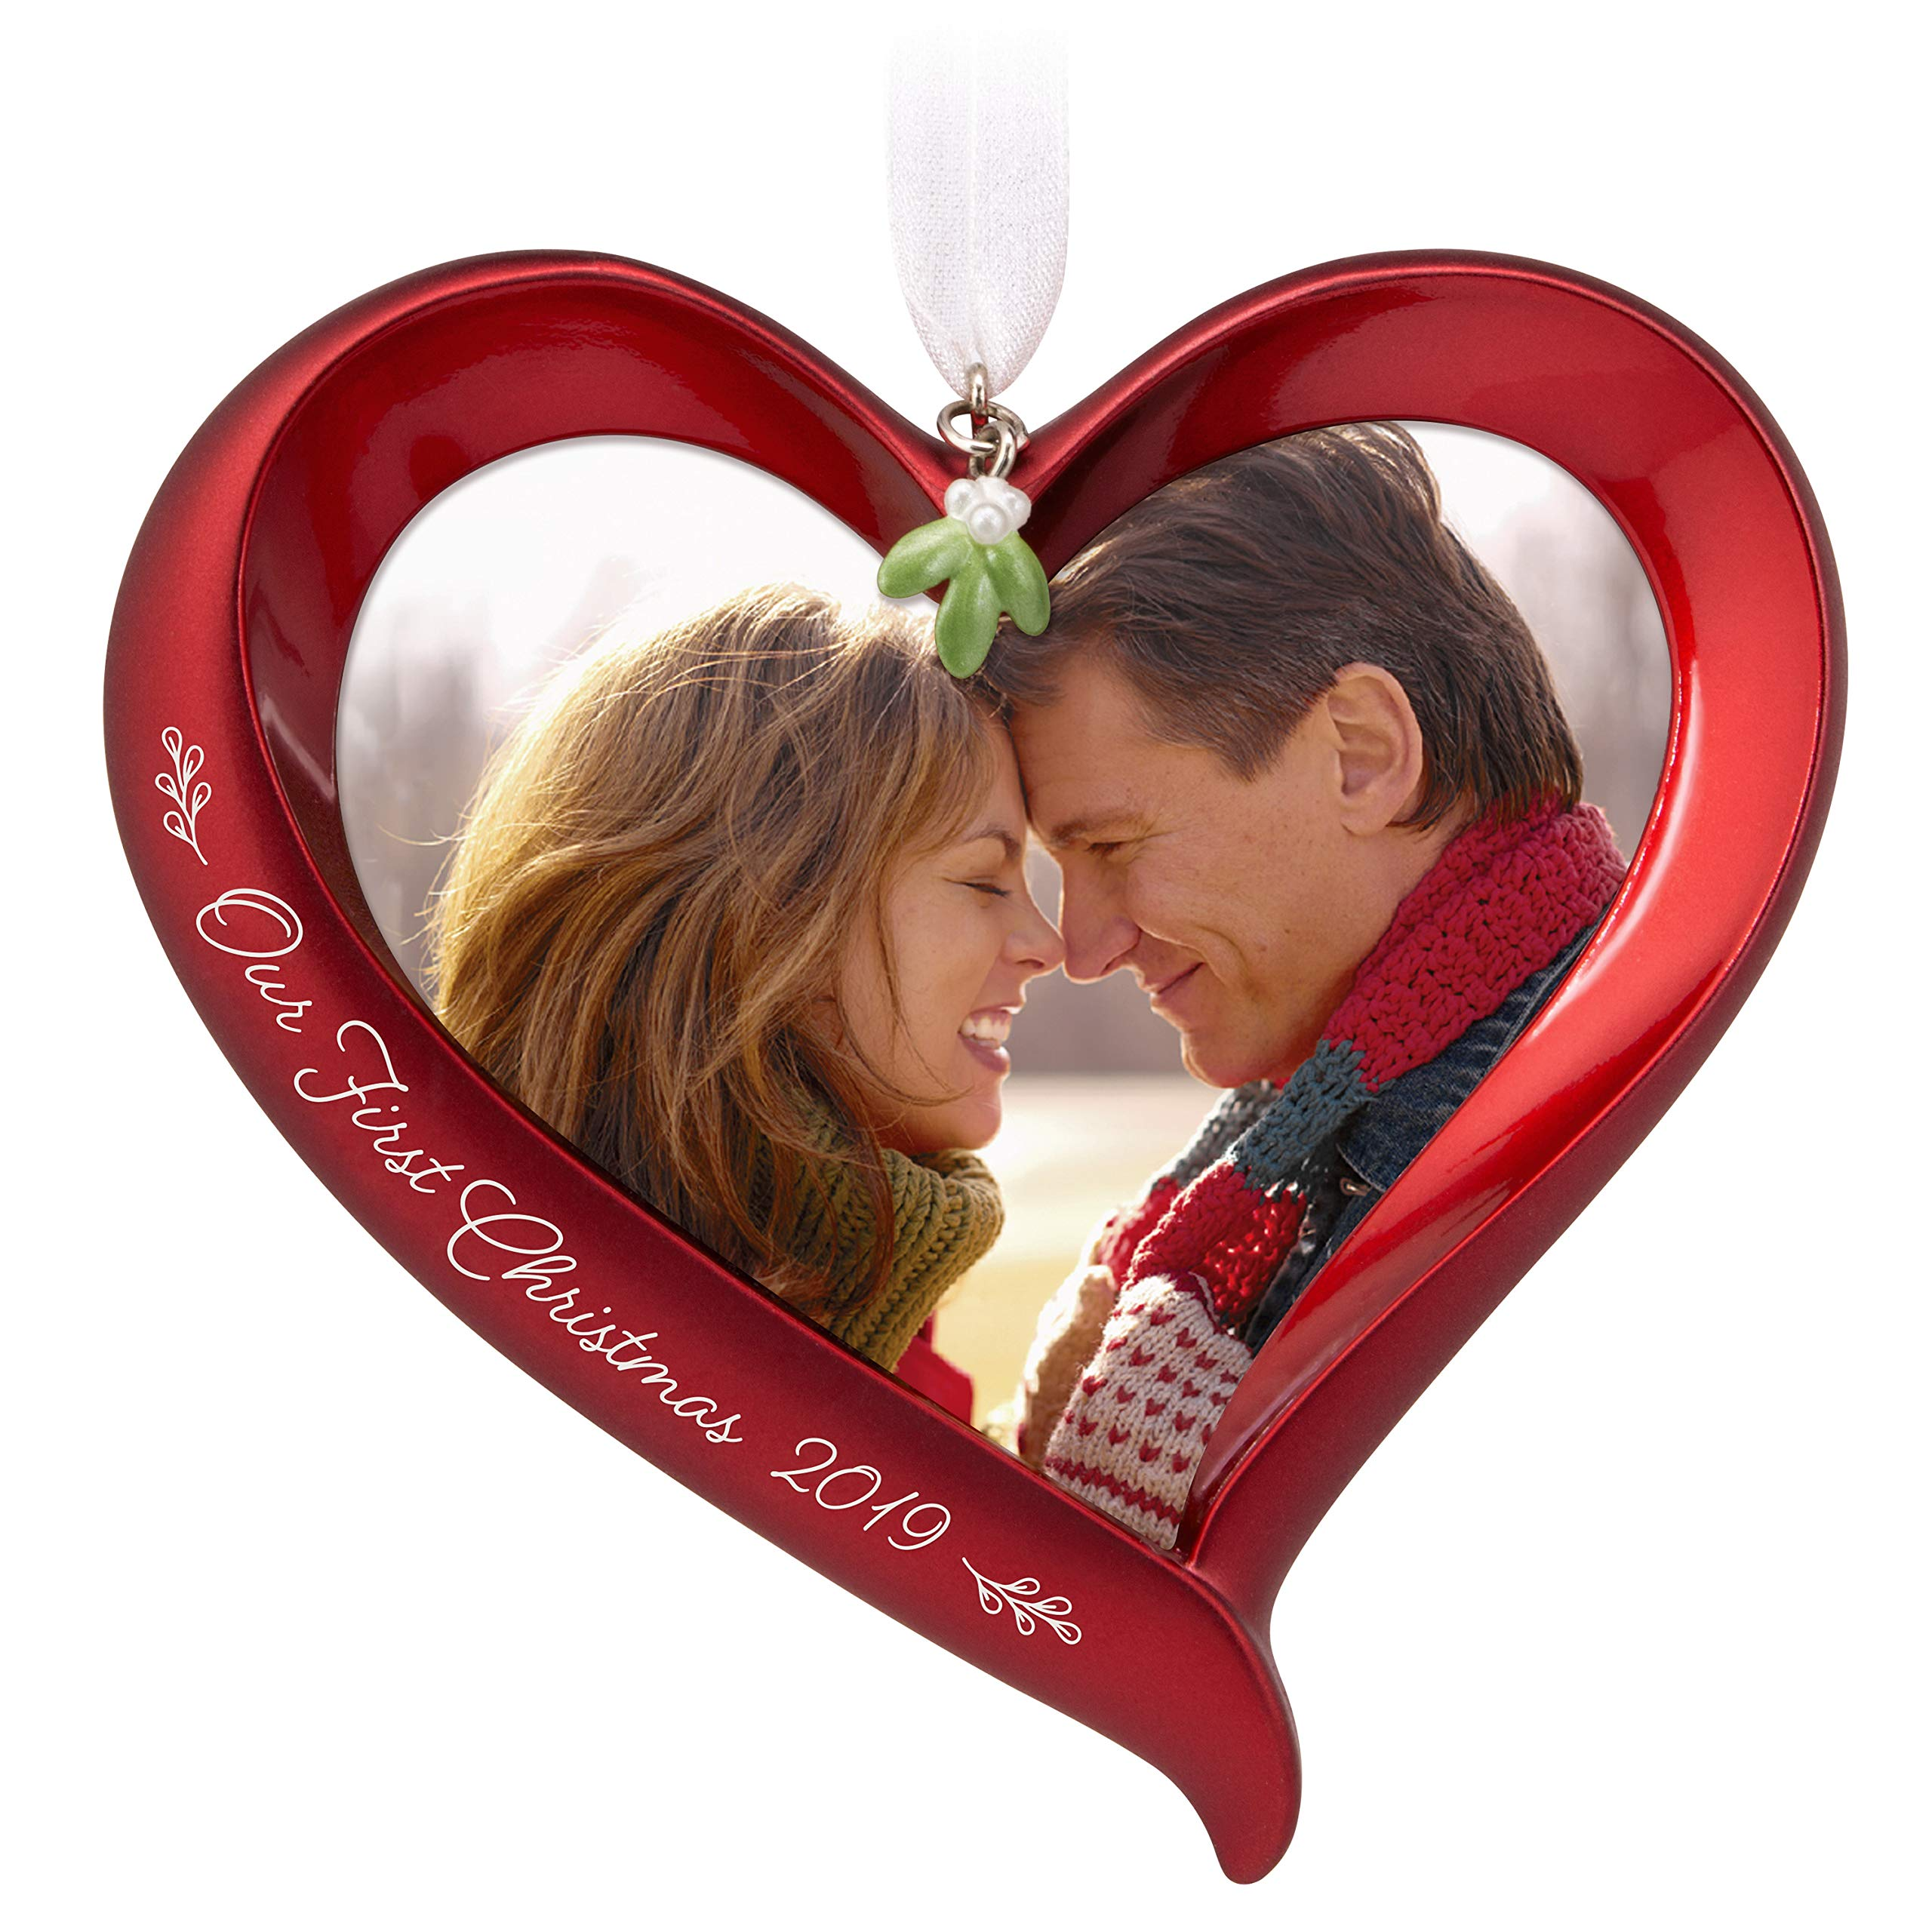 Hallmark Keepsake Ornament 2019 Year Dated Our First Christmas Heart Photo Frame